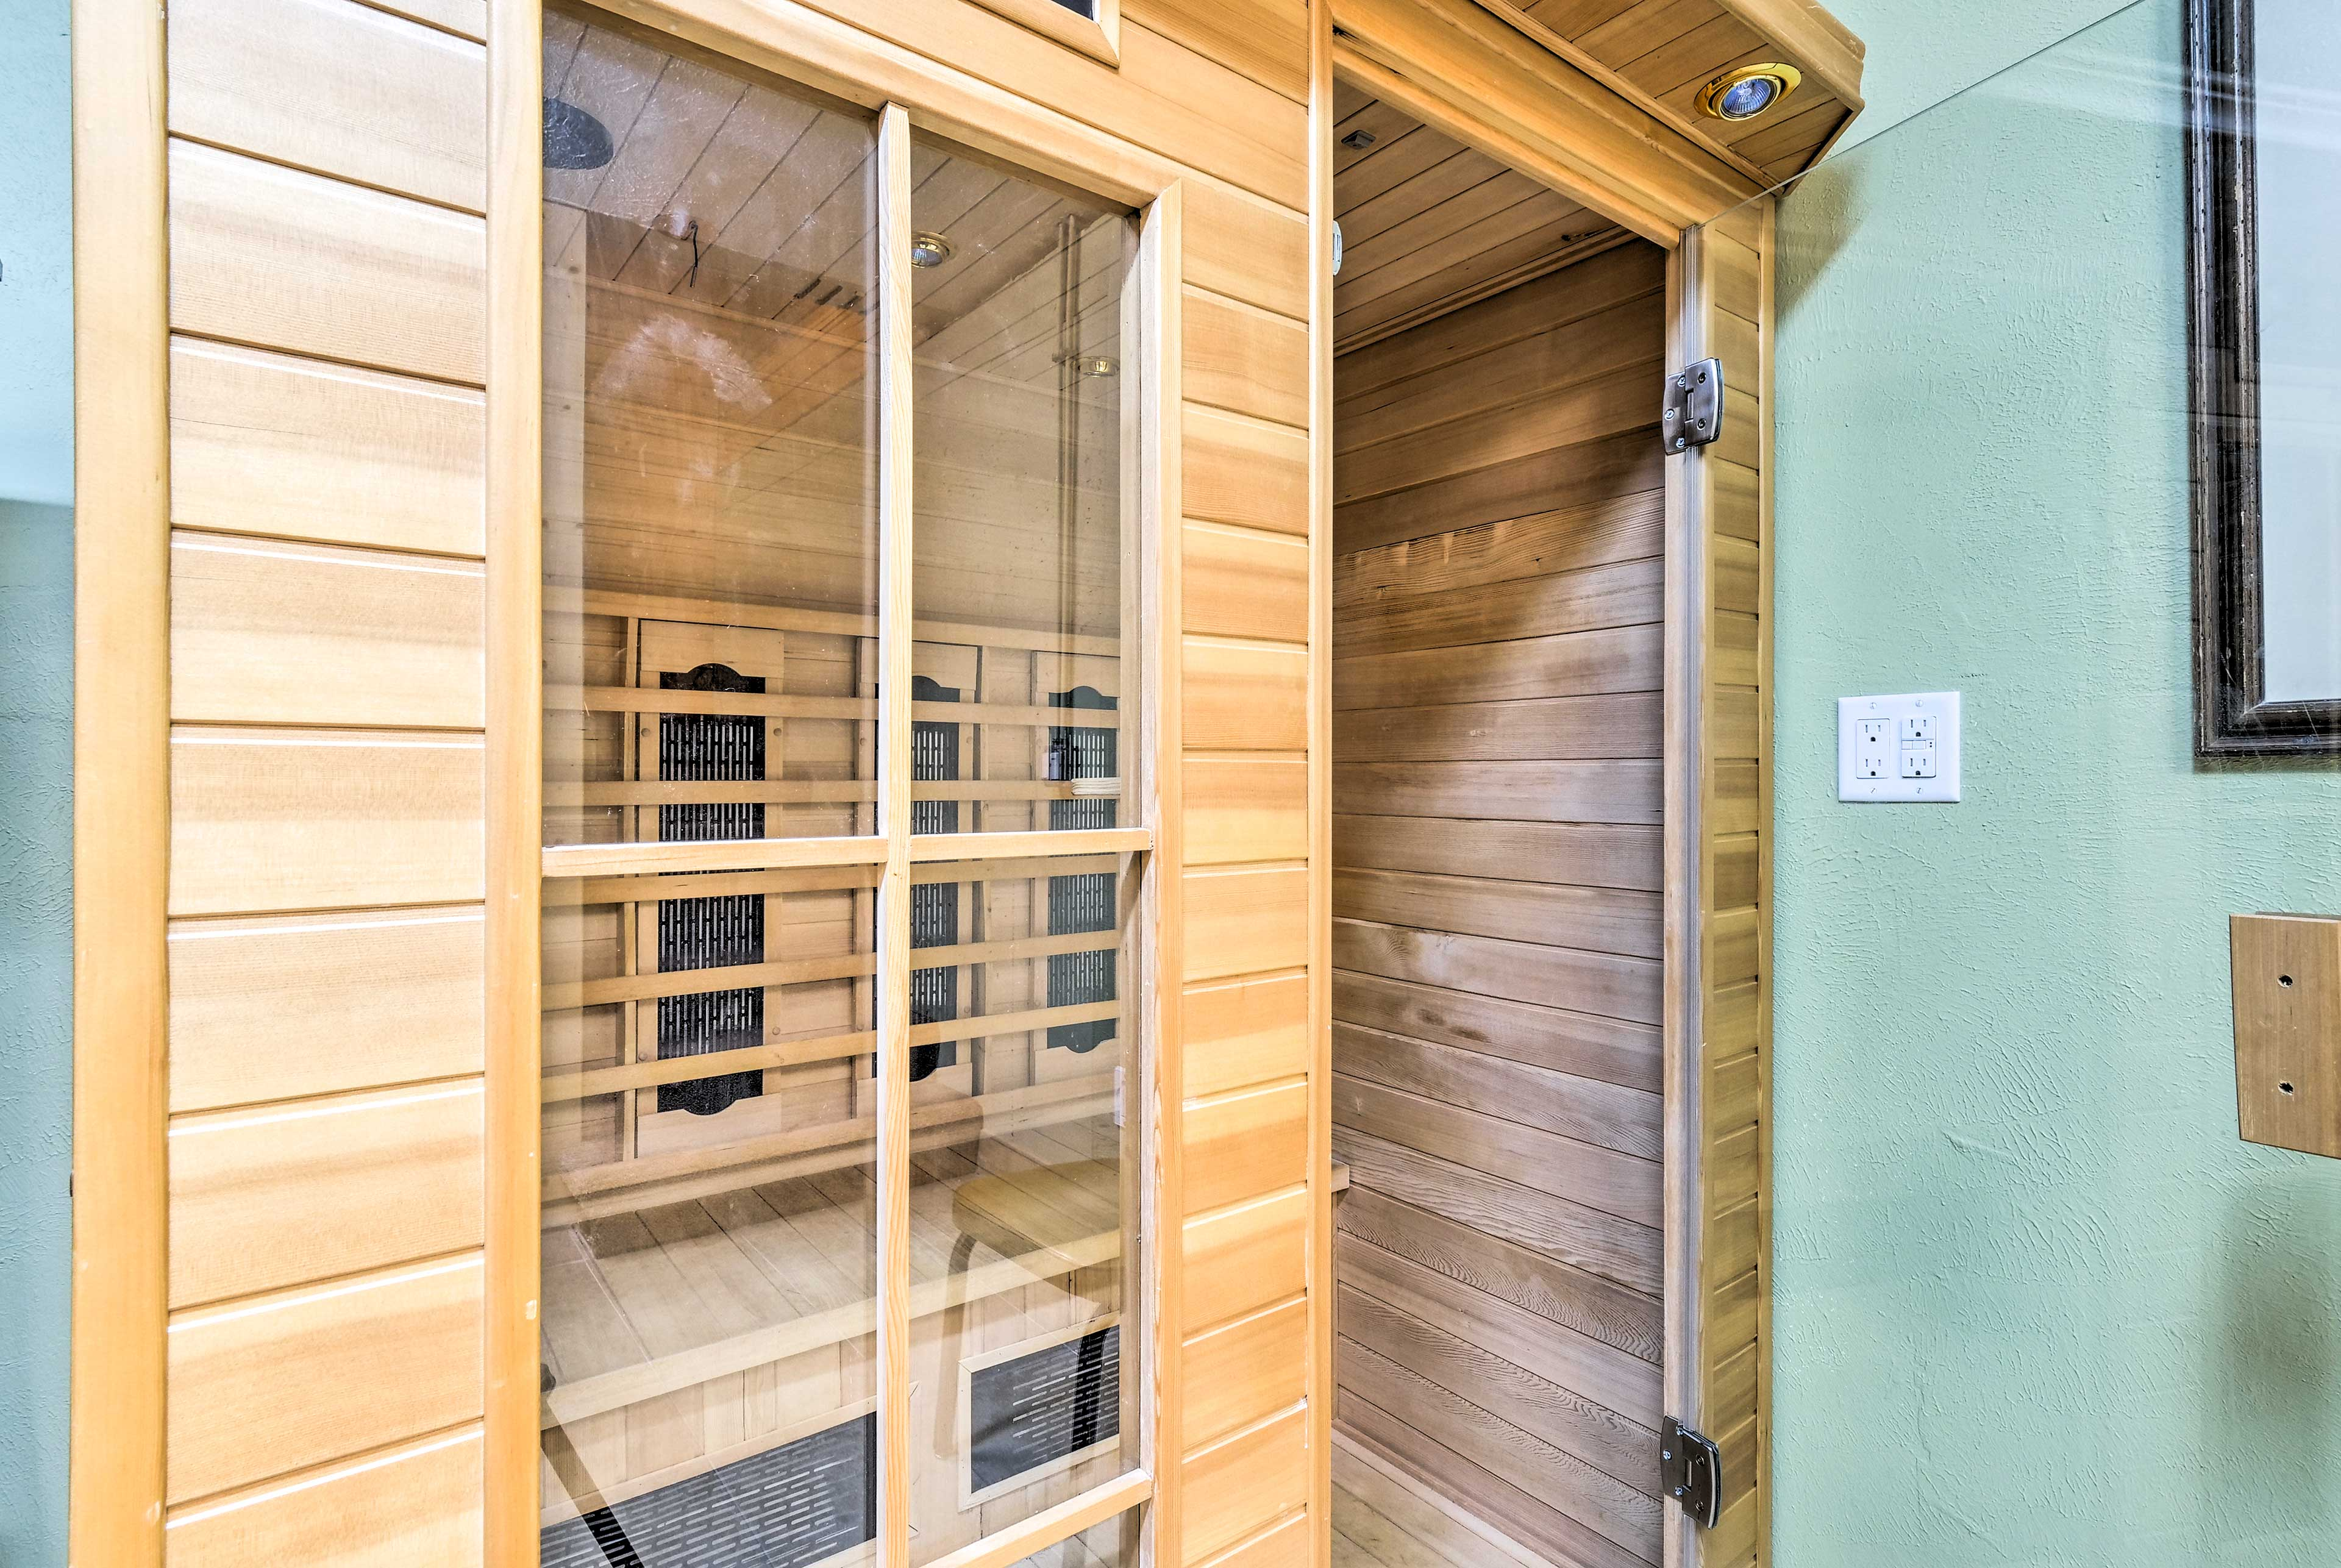 Melt your stress away in the dry sauna.